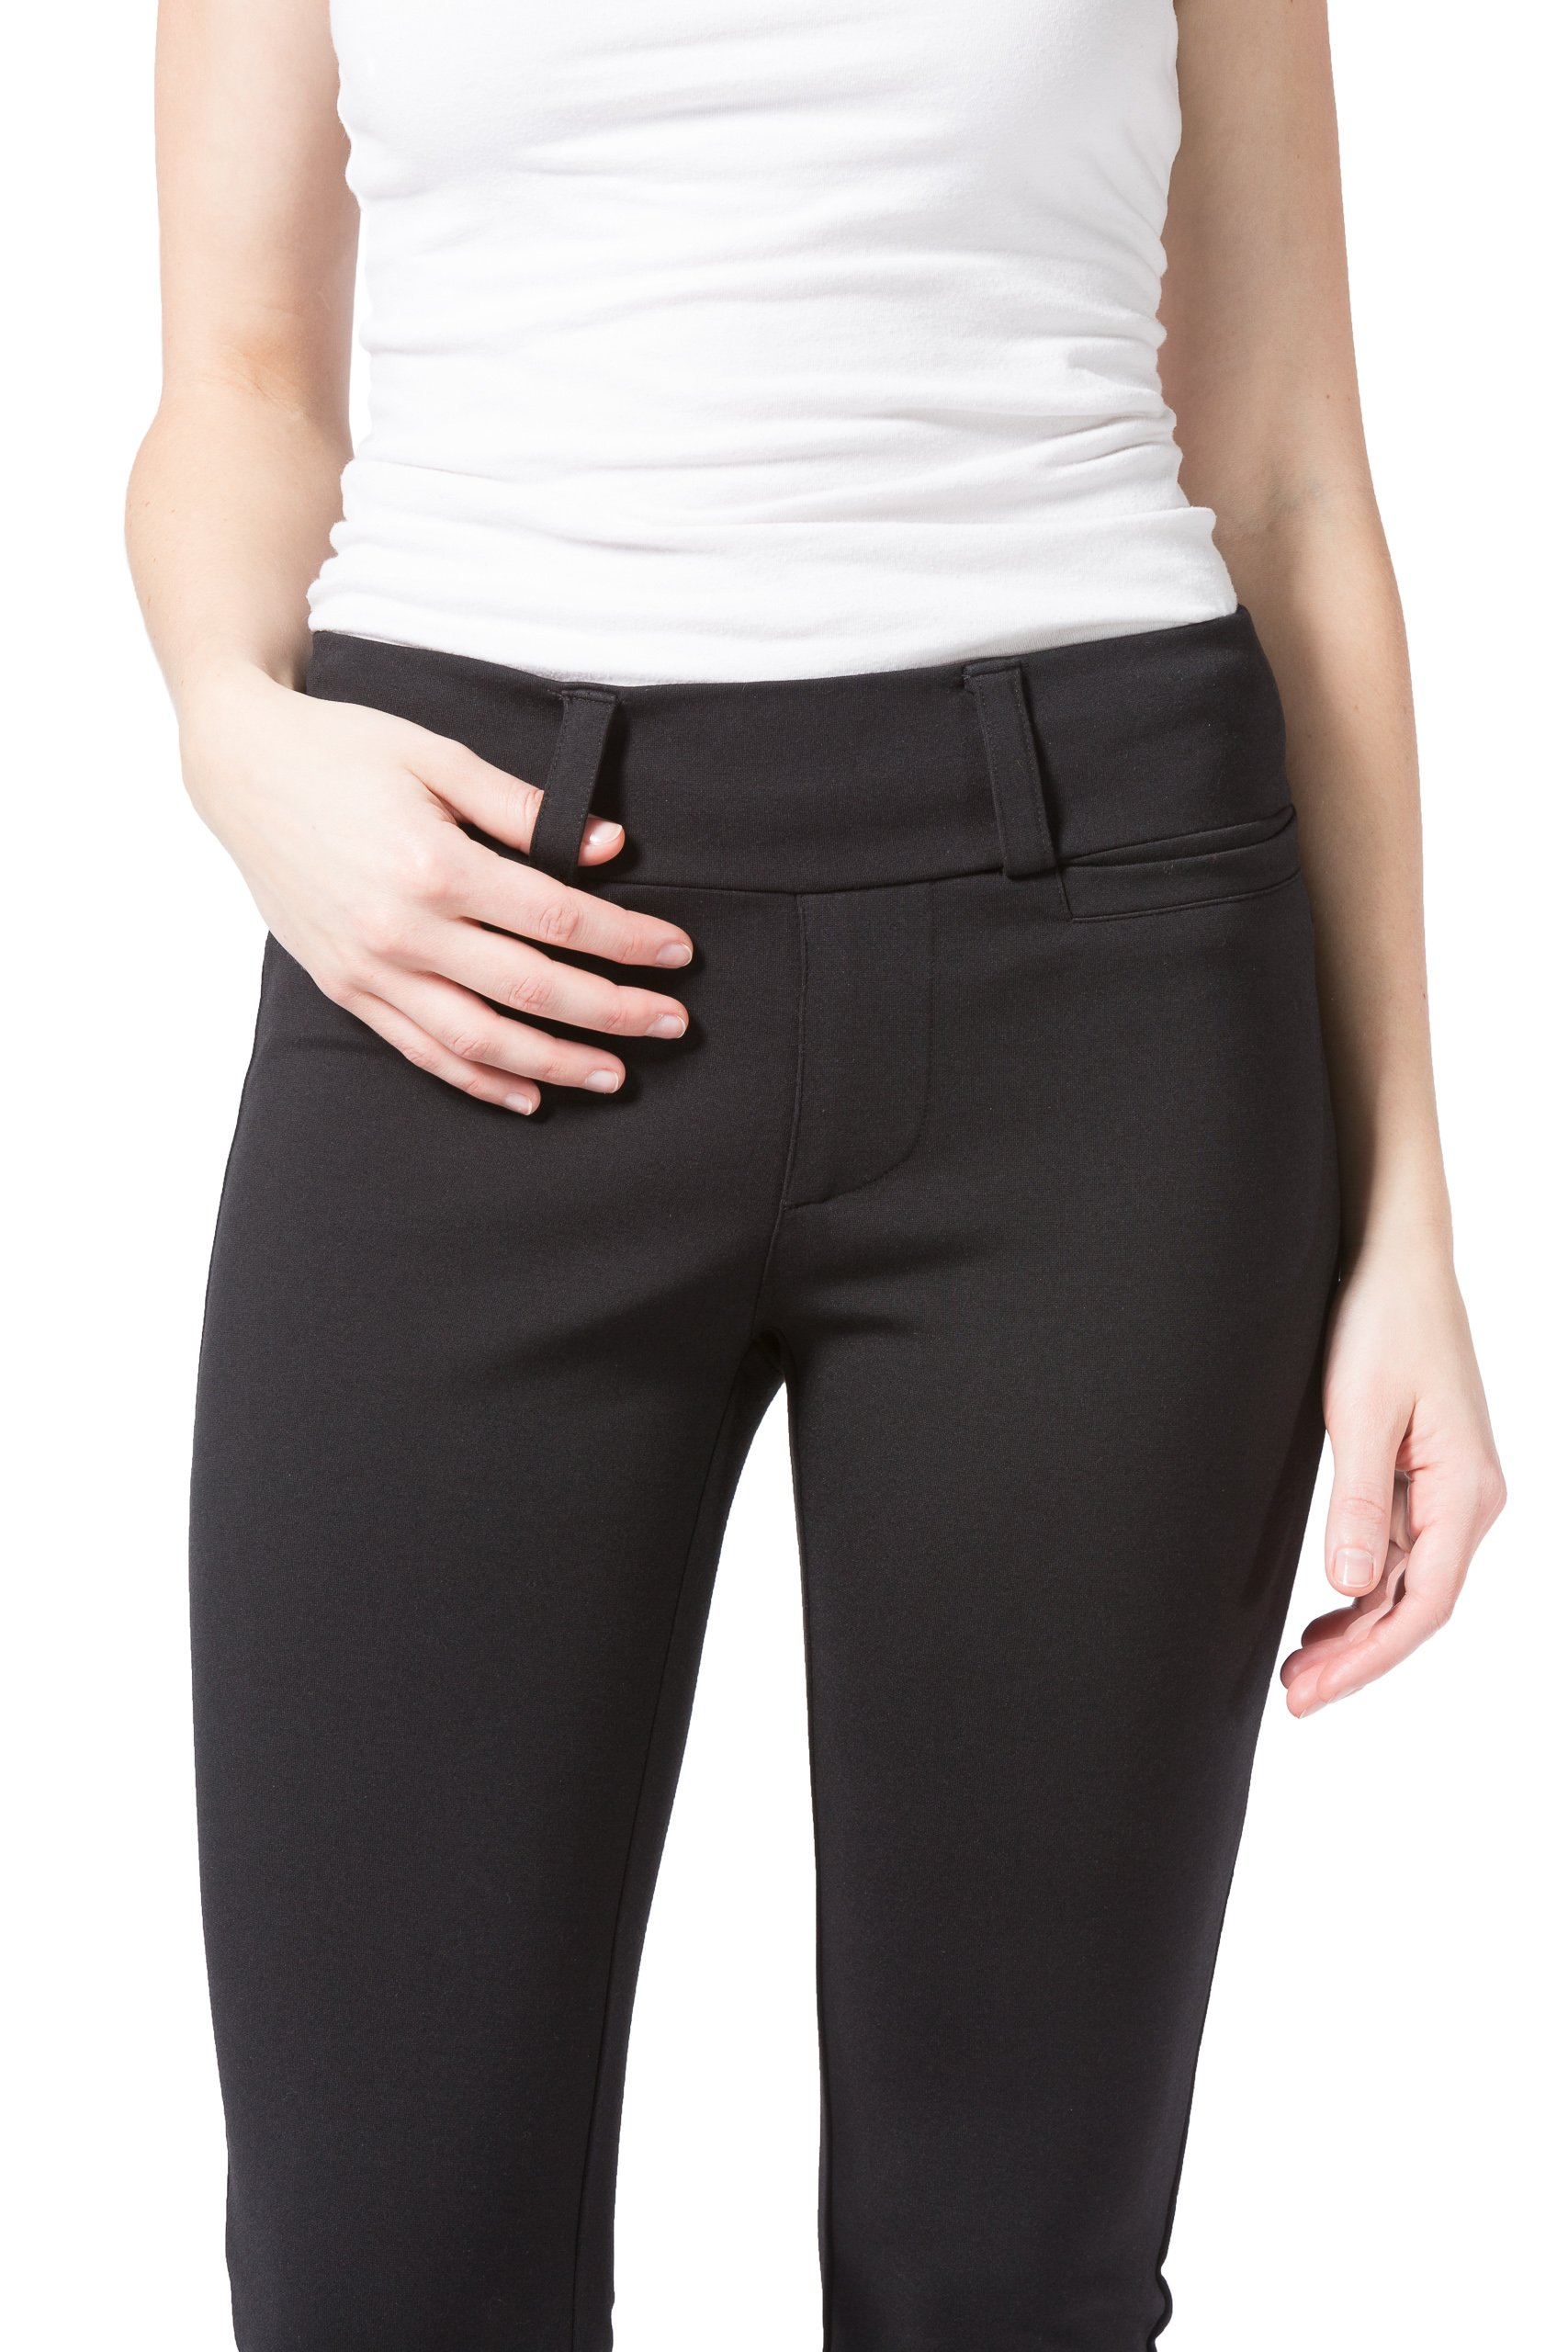 Fishers Finery Women's Ponte Boot Leg Dress Pant; Pull On (Black, M Petite) by Fishers Finery (Image #4)